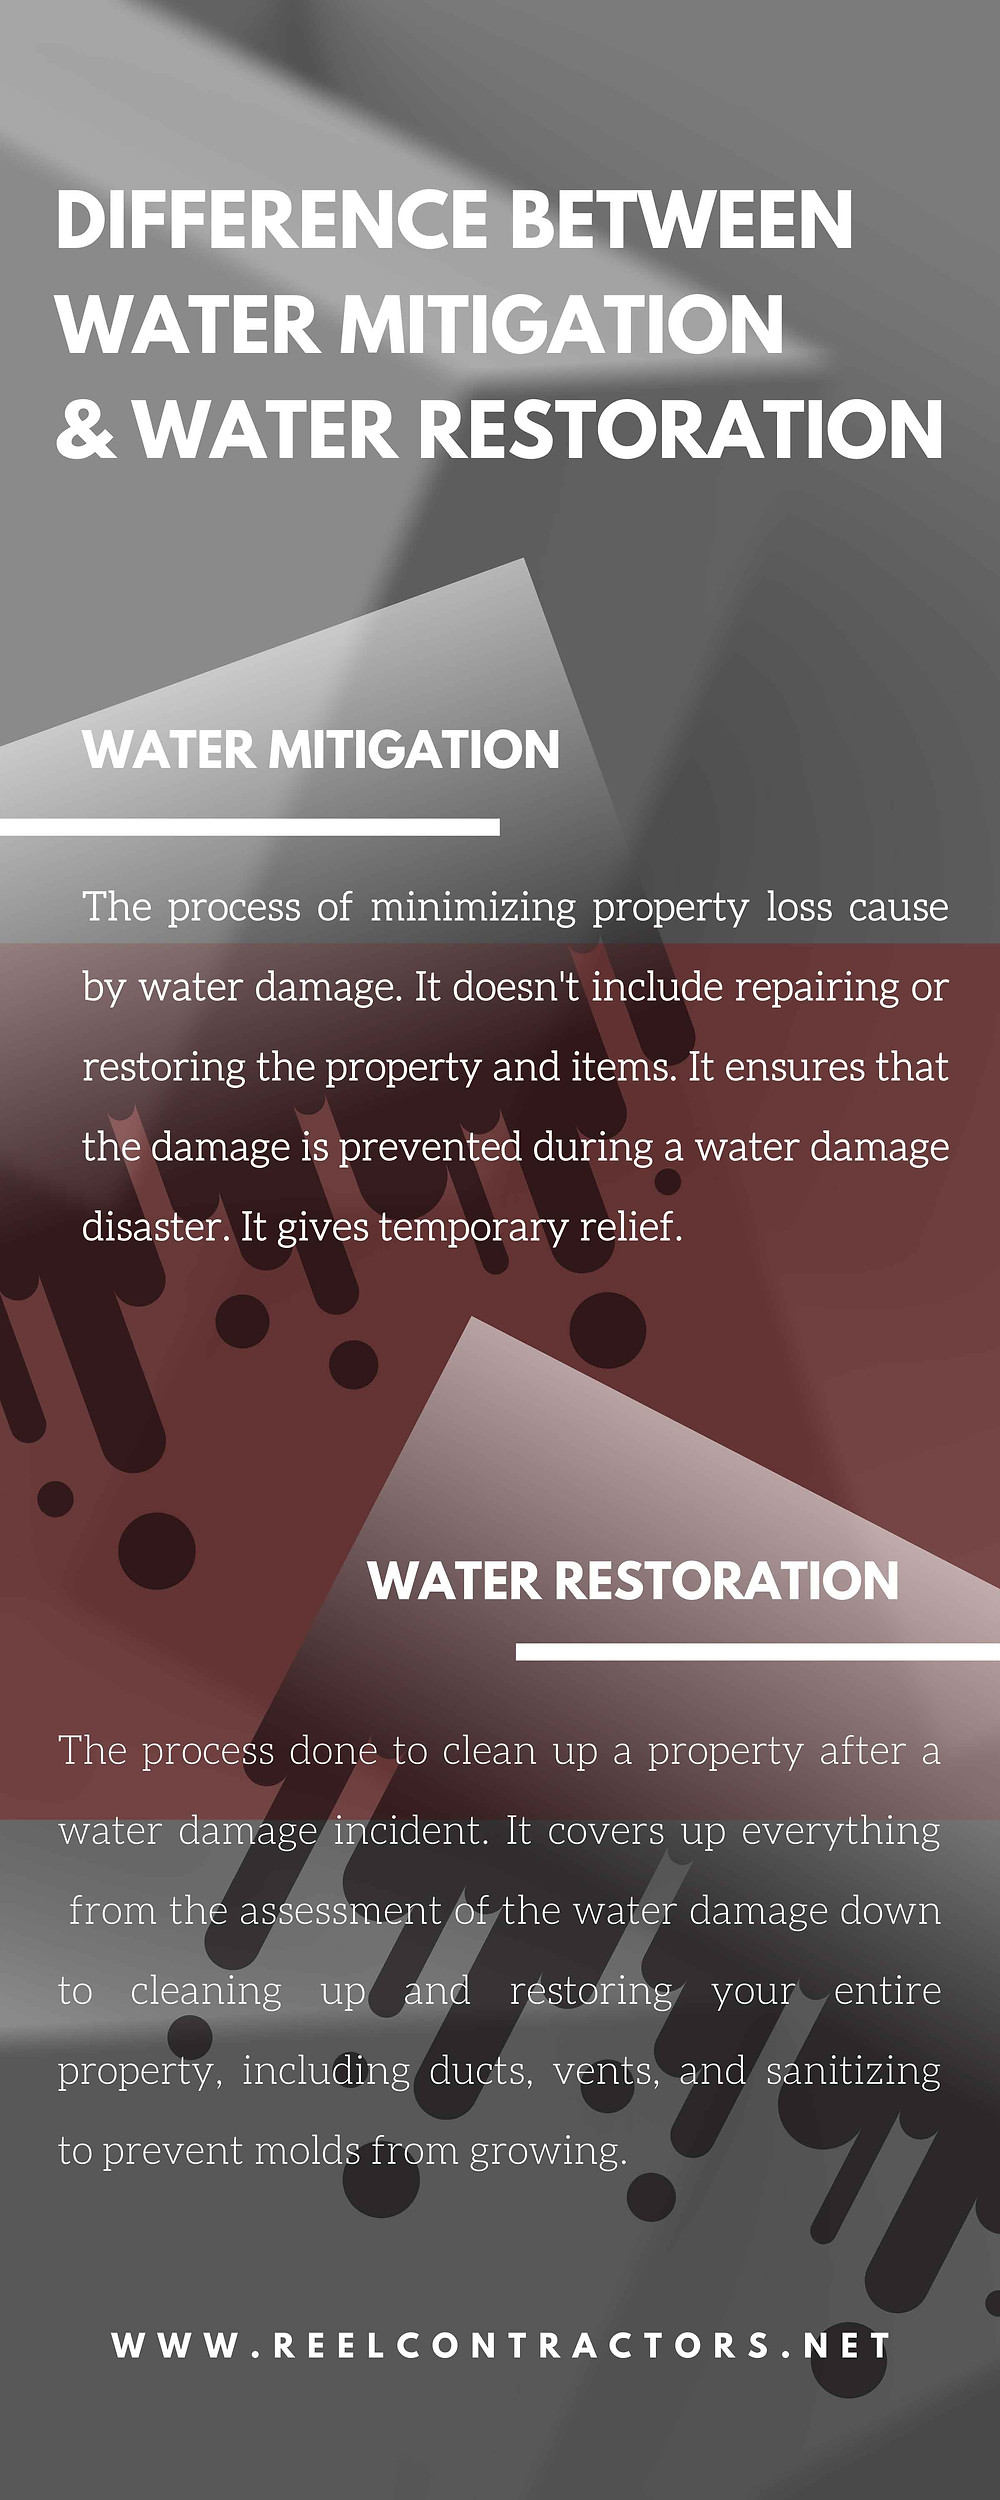 difference-between-water-mitigation-and-water-restoration-infographic